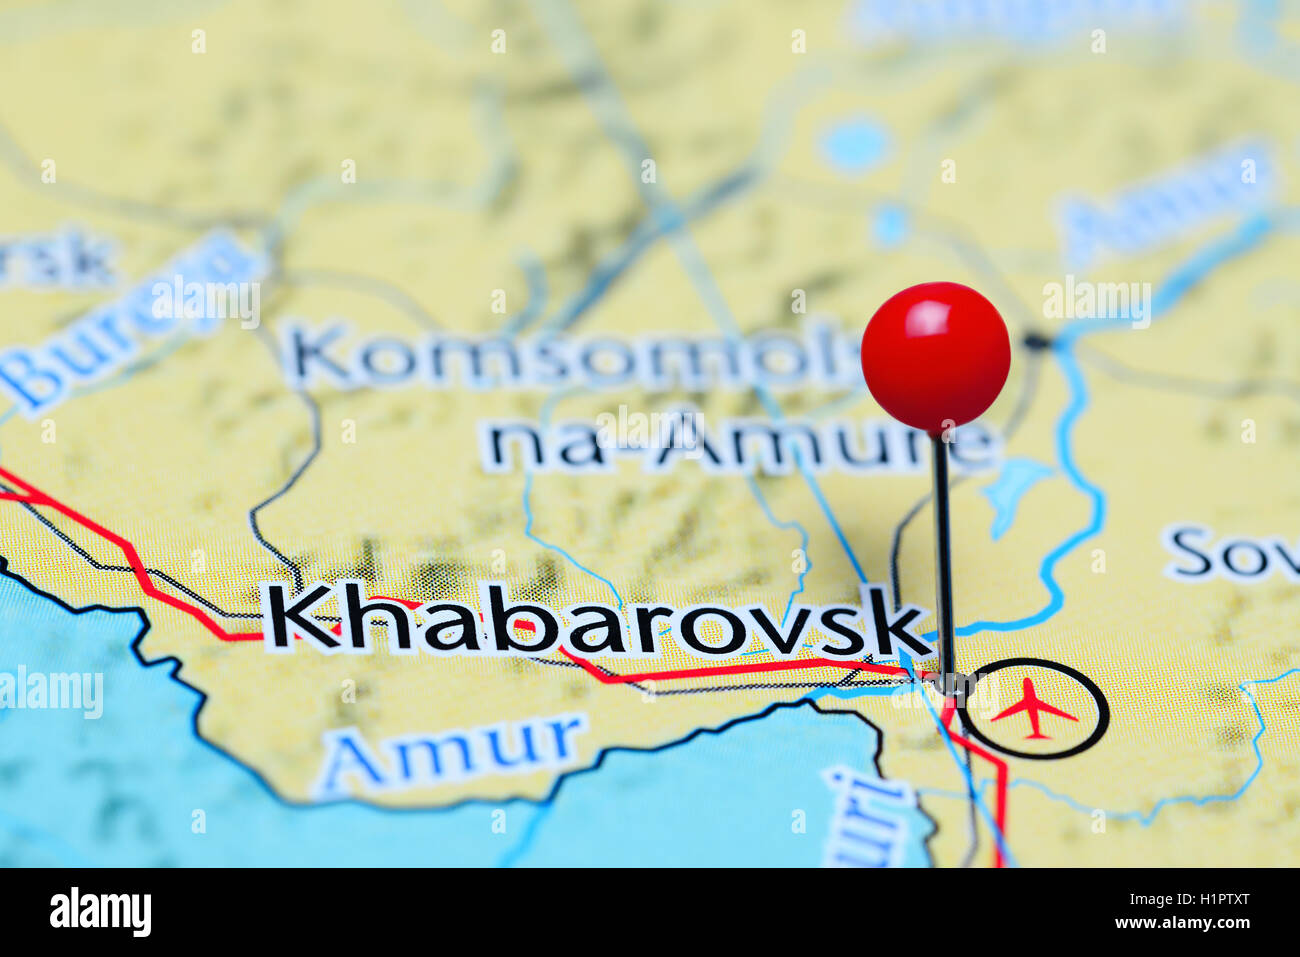 Khabarovsk pinned on a map of Russia Stock Photo 121589744 Alamy